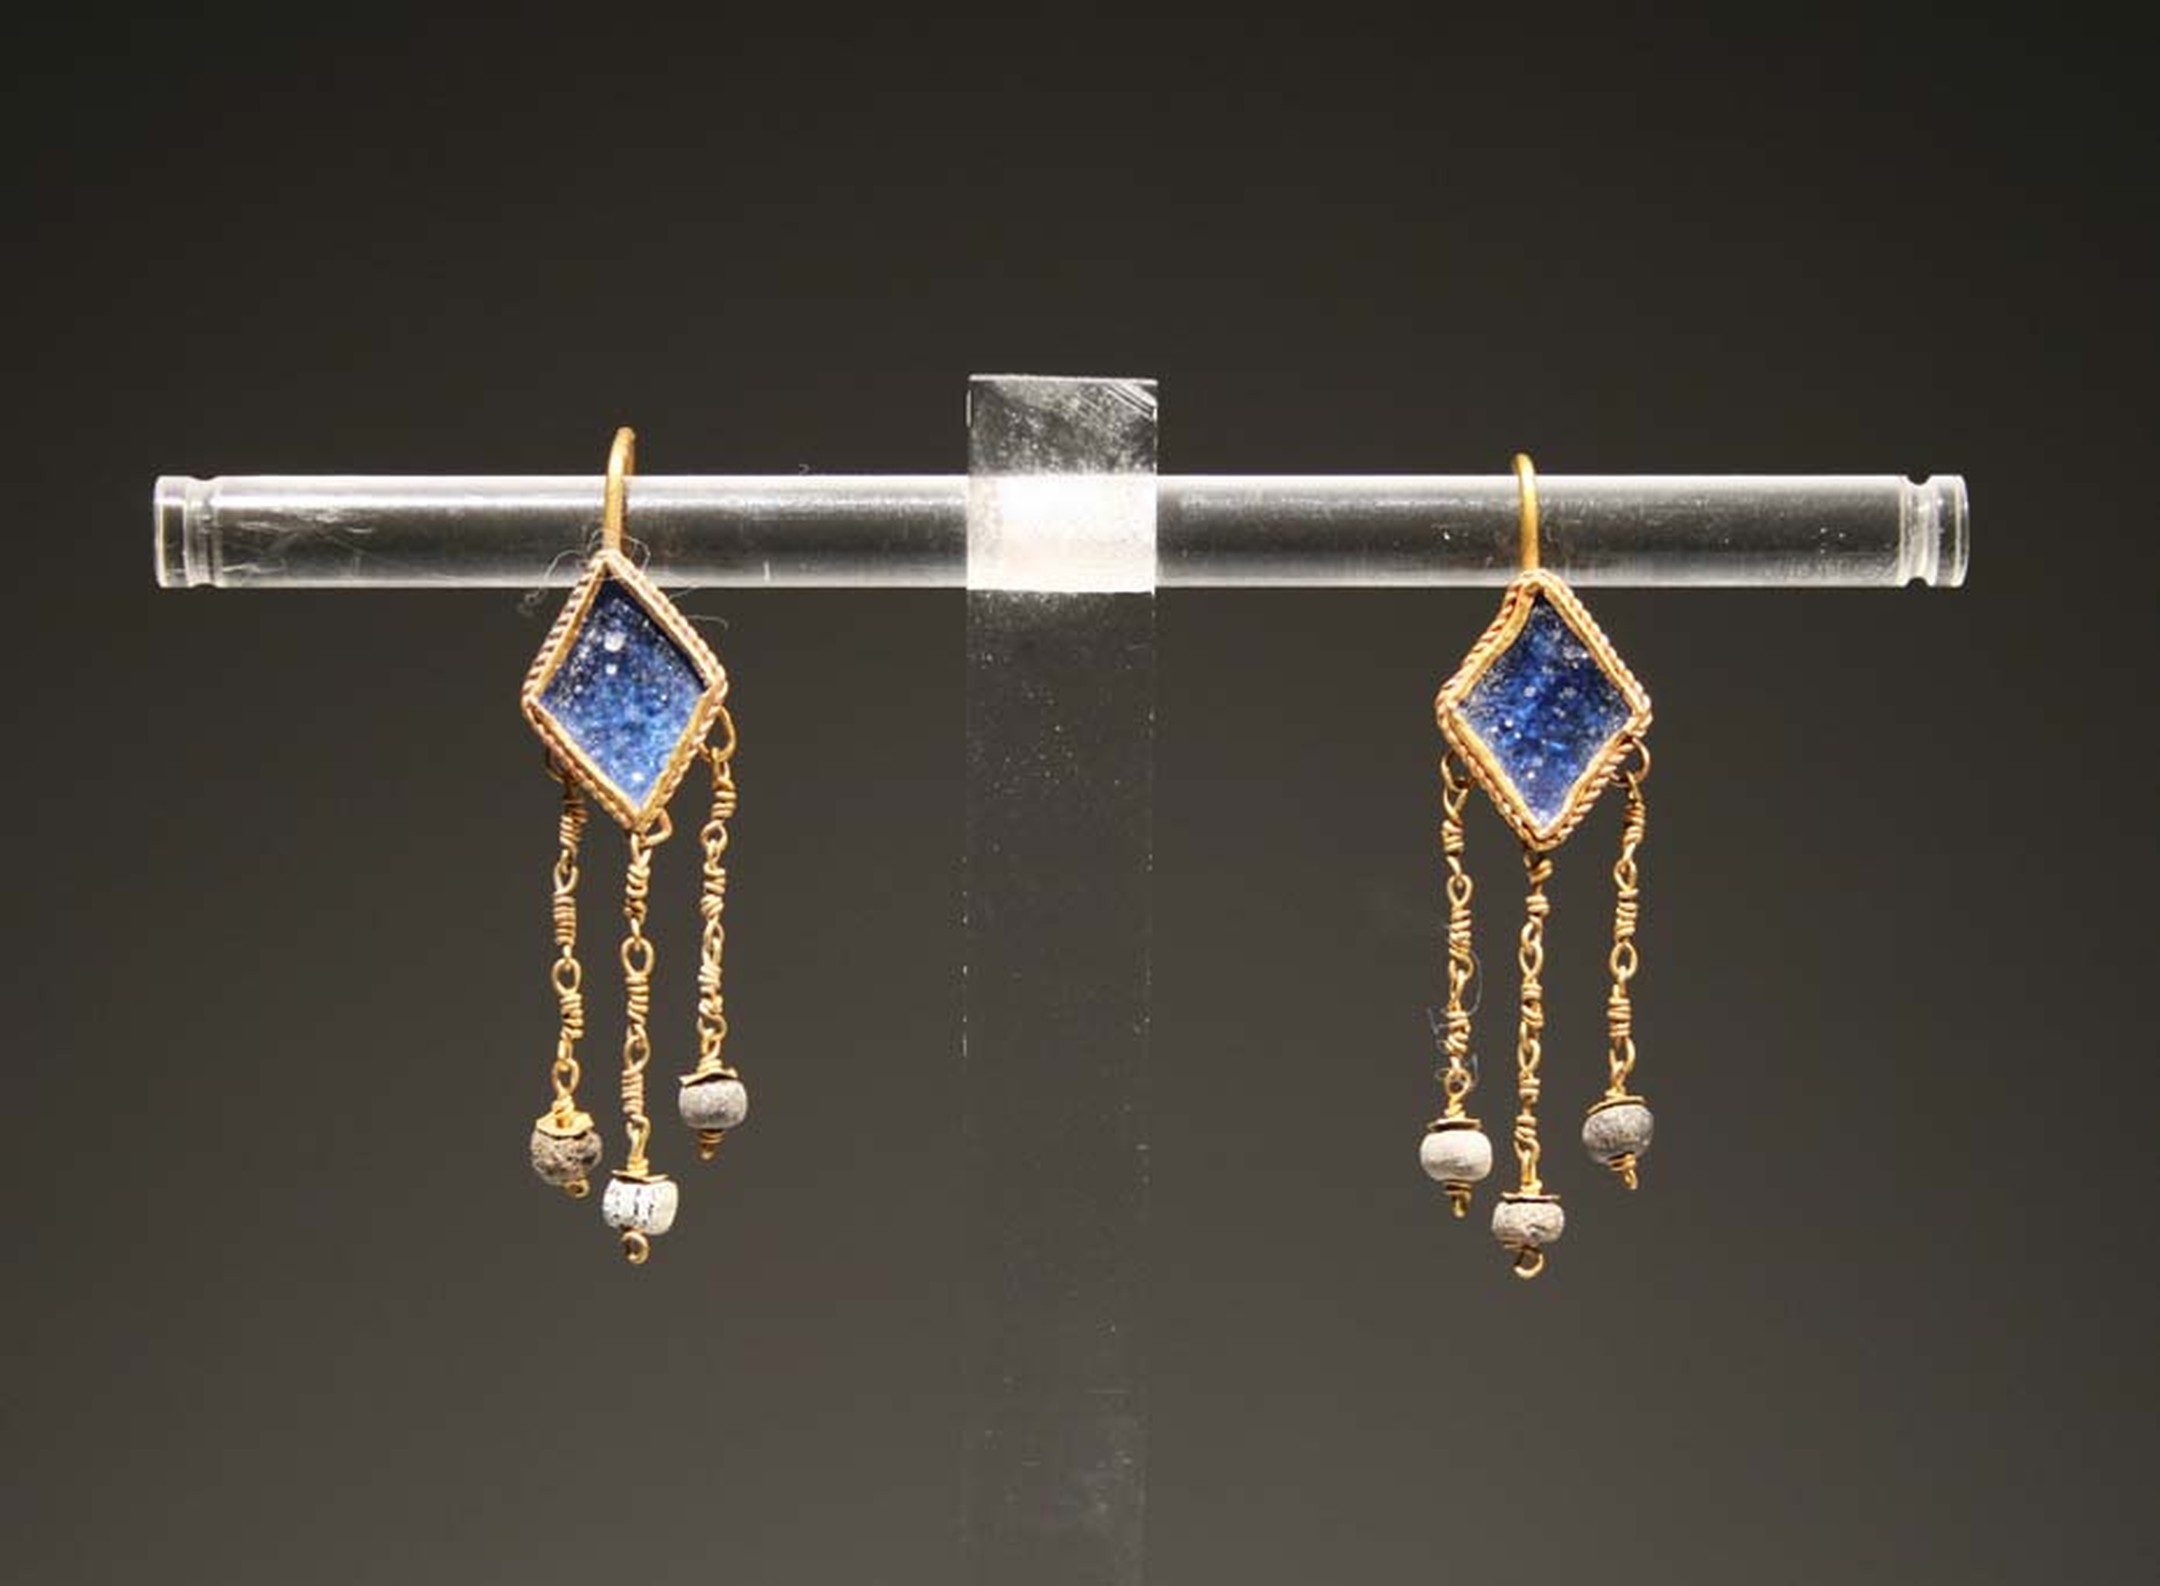 Antiquities dealer Jean-David Kahn, whose sculptures can sell for seven figures, is selling several lovely, affordable jewels at TEFAF, among them a pair of Roman blue glass, angle earrings made between the 1st and 3rd centuries AD at €3,500.